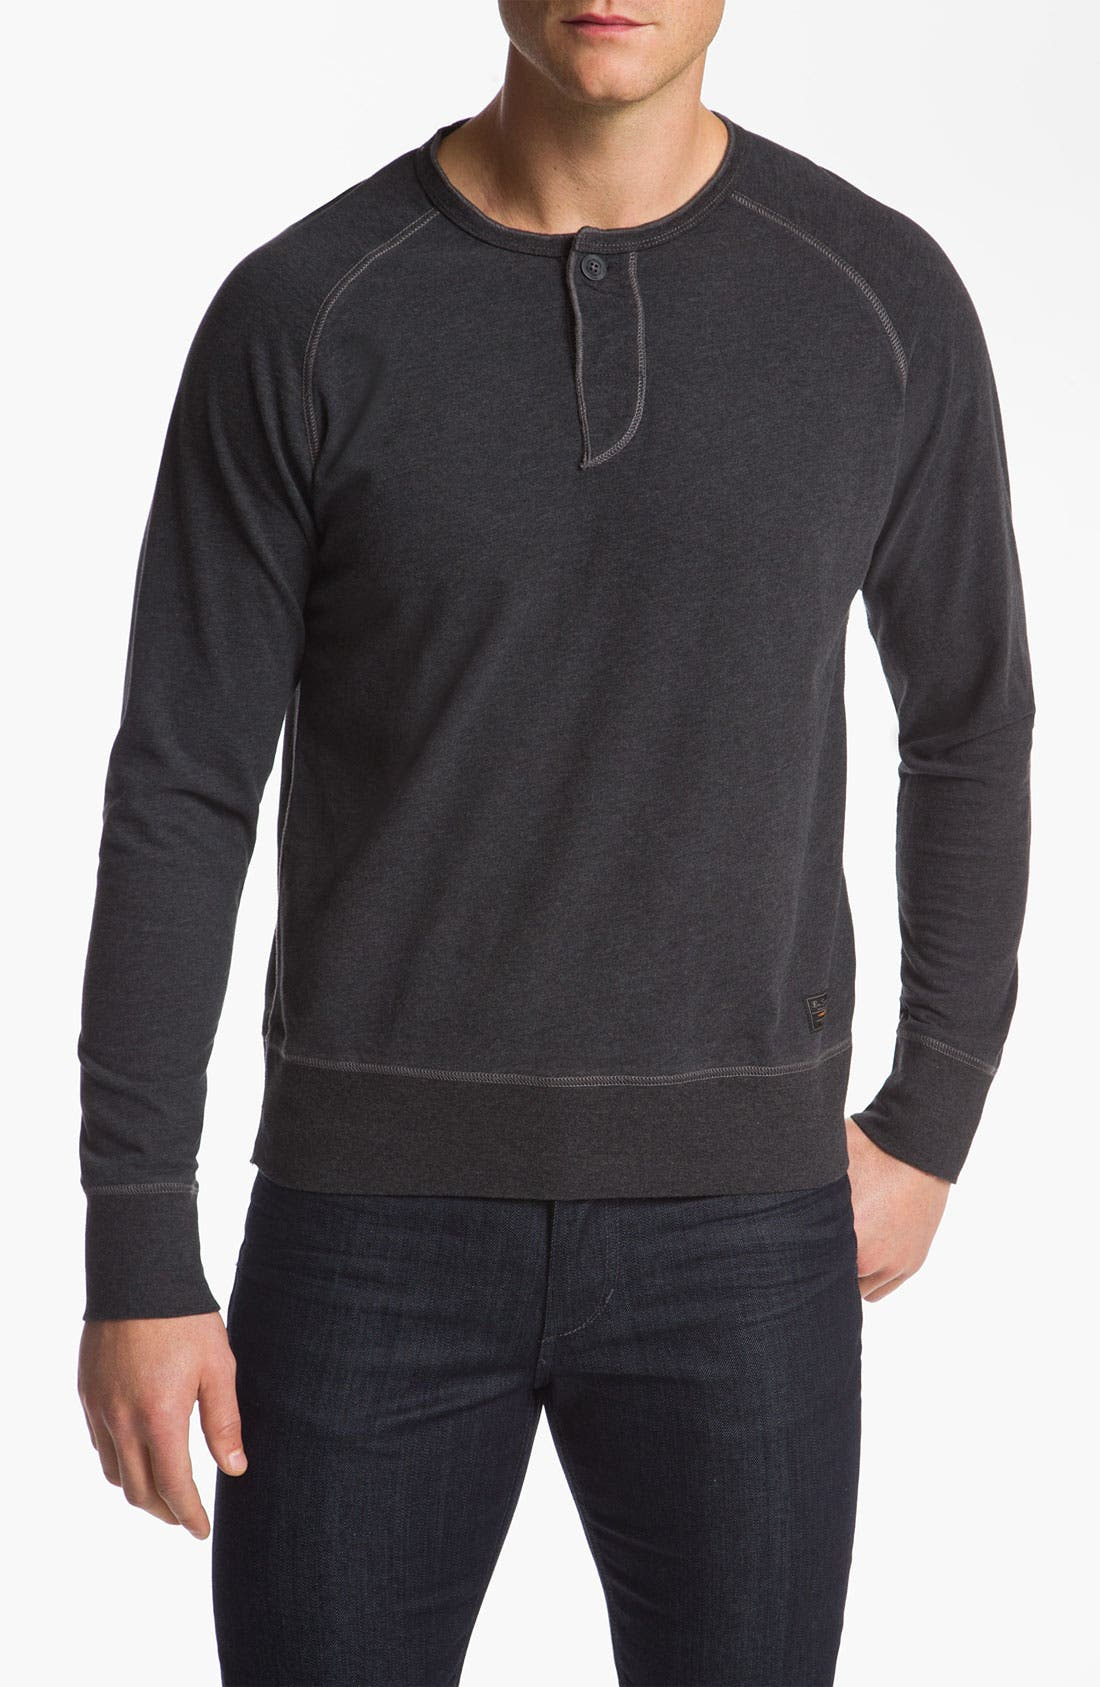 Alternate Image 1 Selected - Ben Sherman Henley Sweatshirt